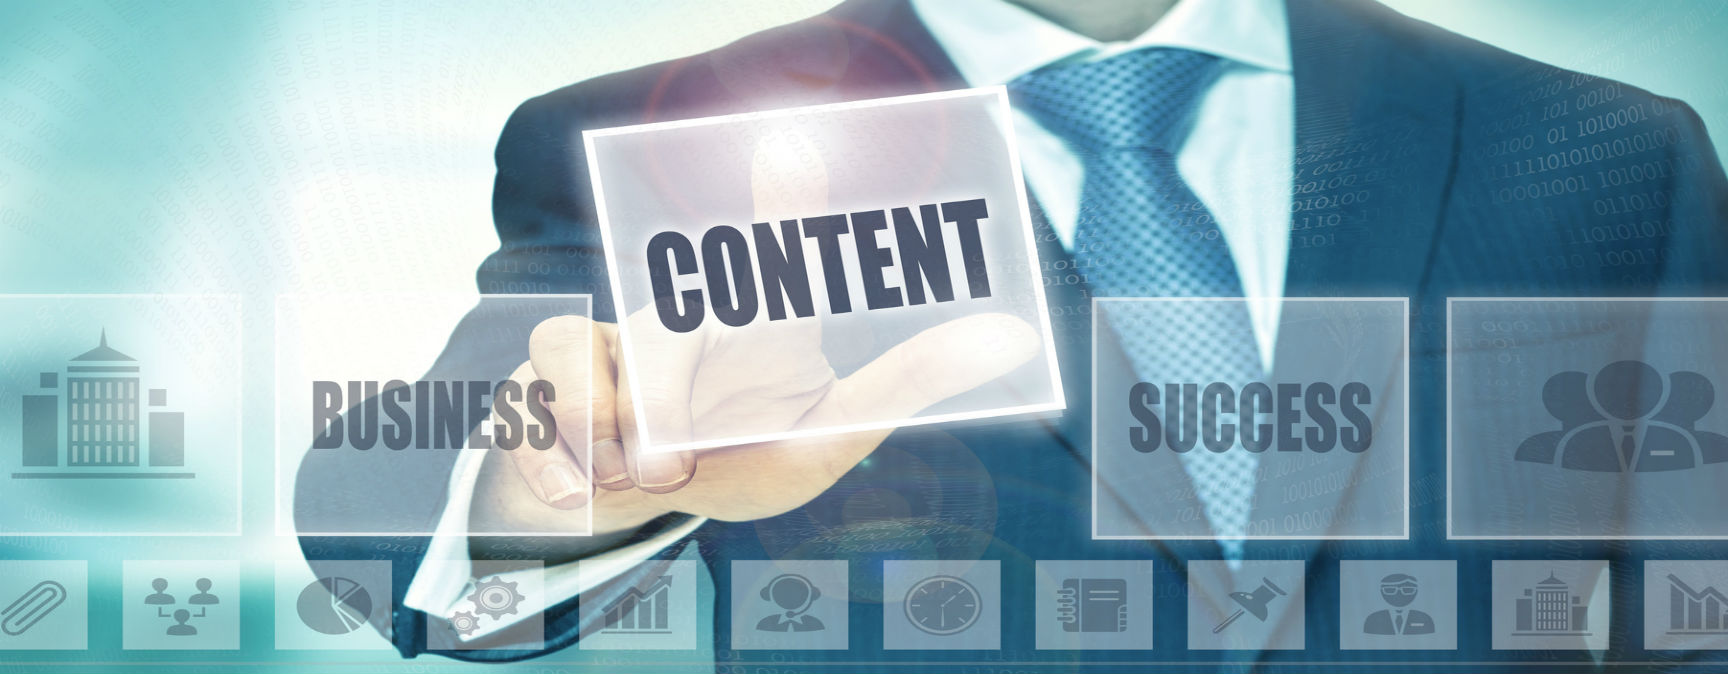 Content Marketing is very important for the well-being of any digital marketing program.